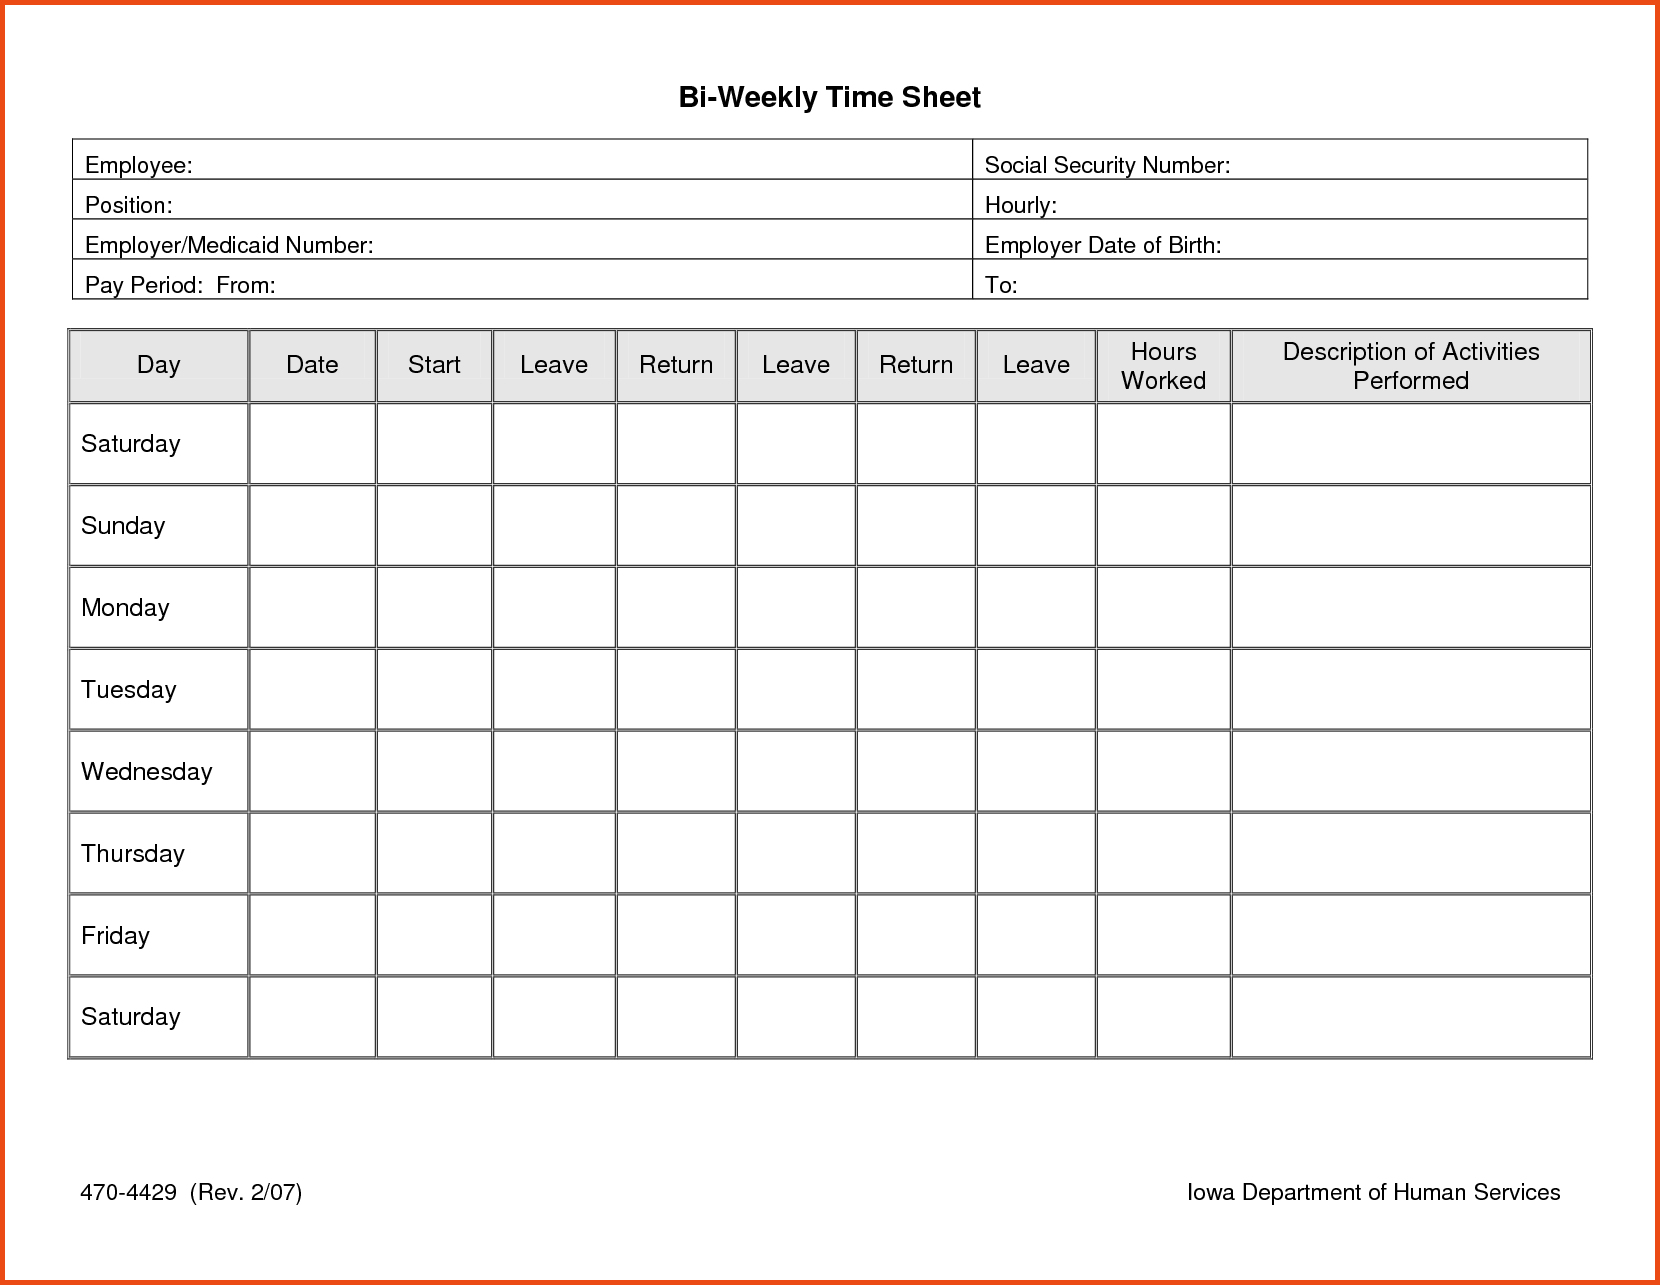 013 Time Sheet Templates Free Daily Timesheet Template Printable - Free Printable Weekly Time Sheets